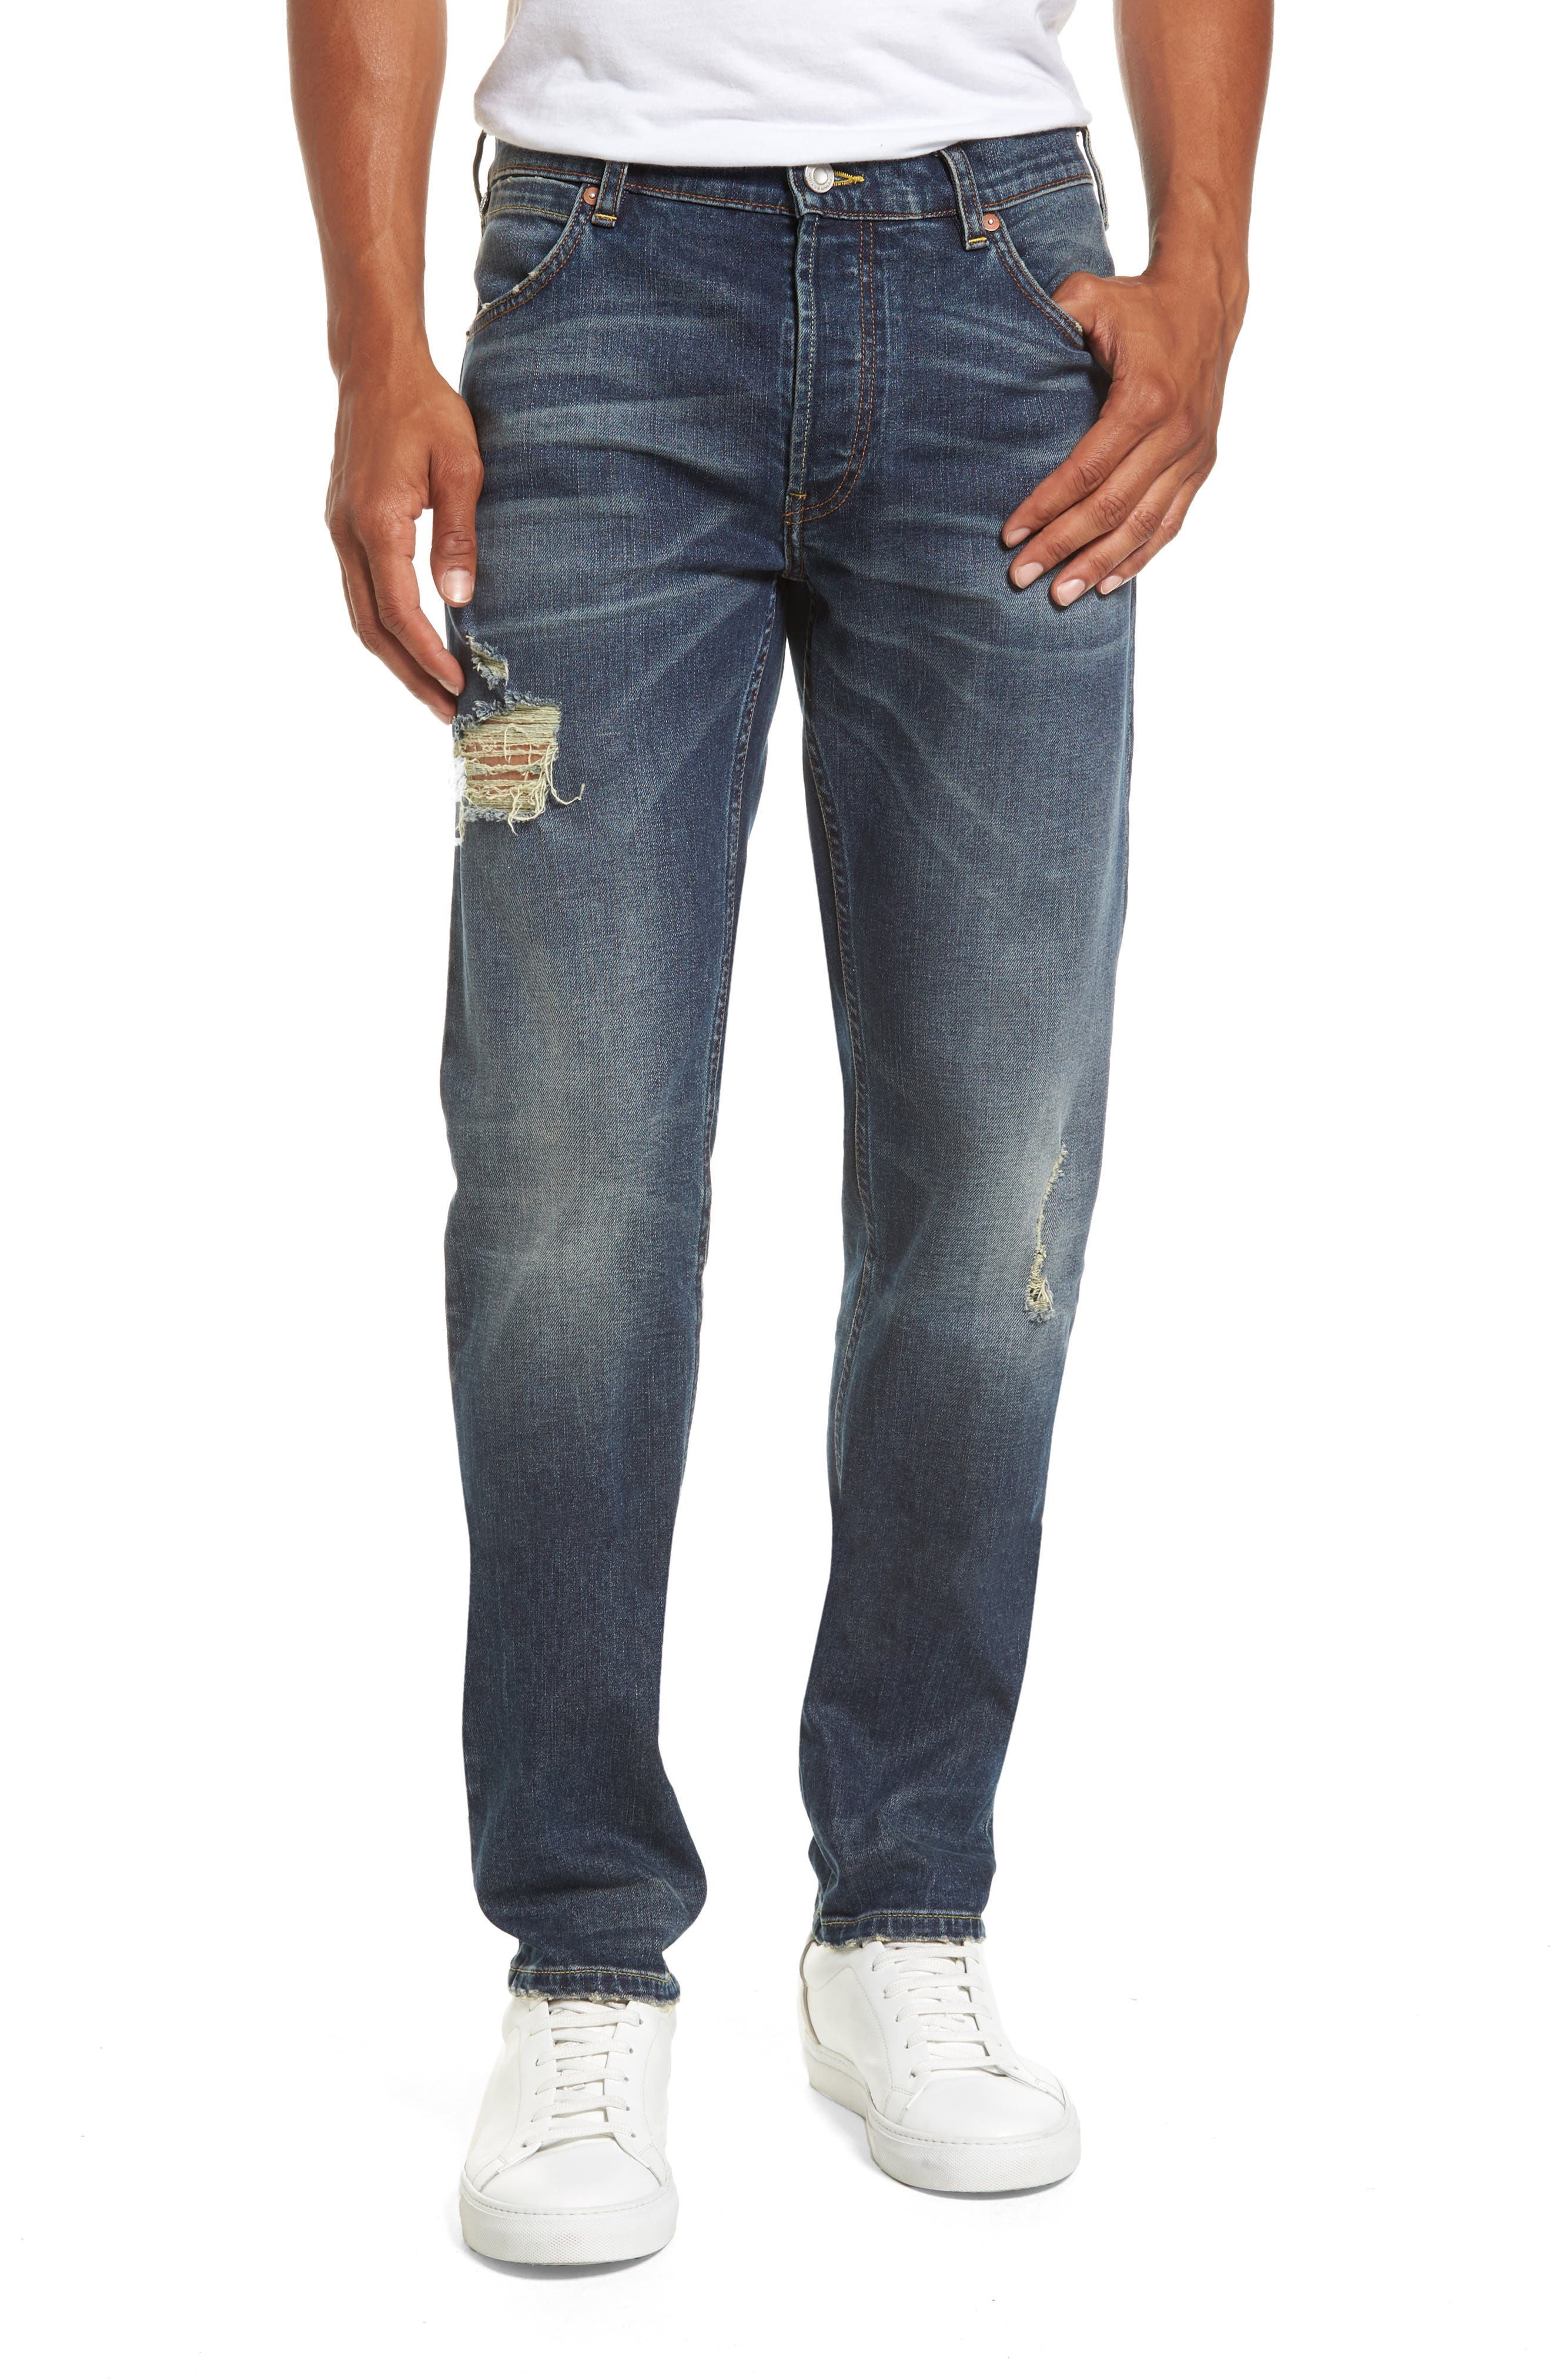 French Connection Slim Fit Distressed Jeans (Vintage & Holes)